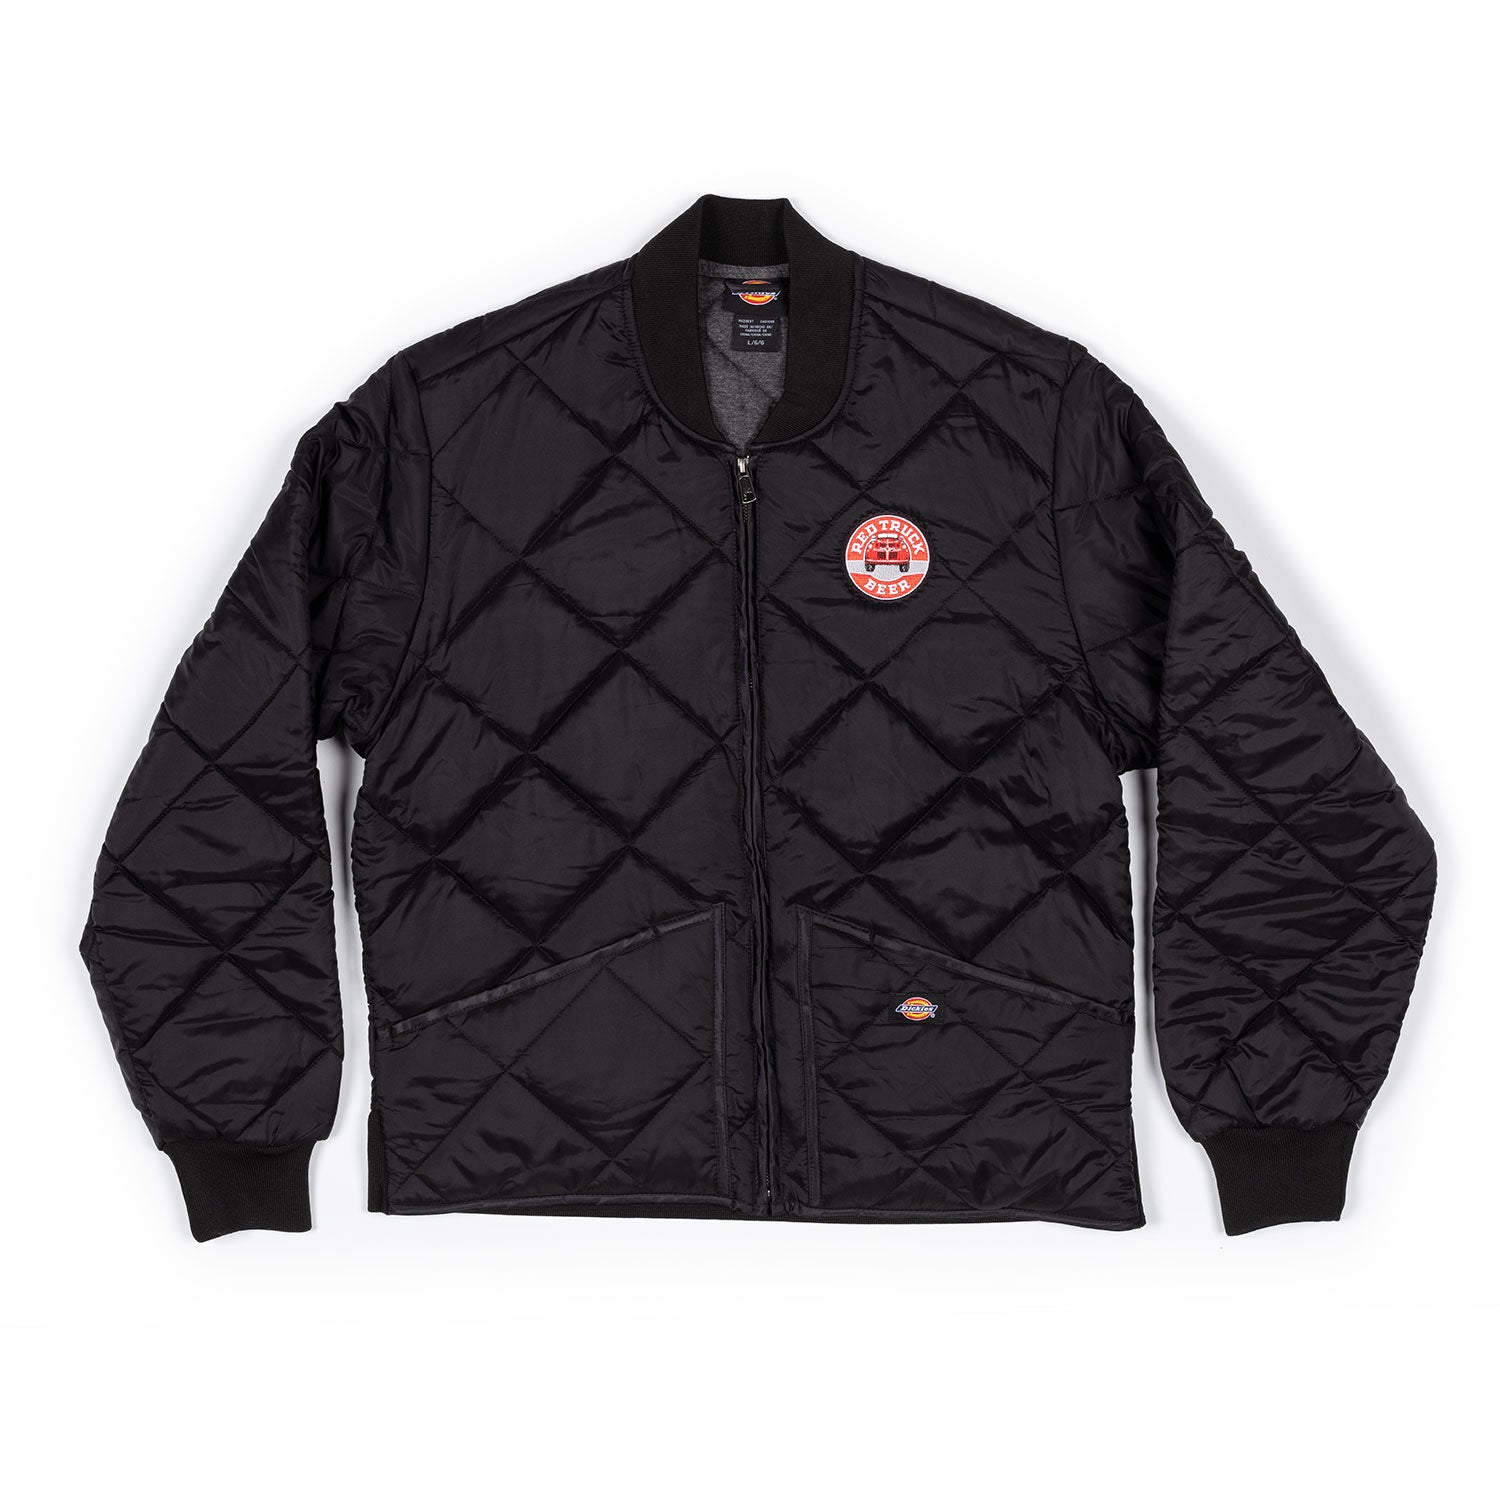 RED TRUCK DICKIES MEN'S PUFFY JACKET